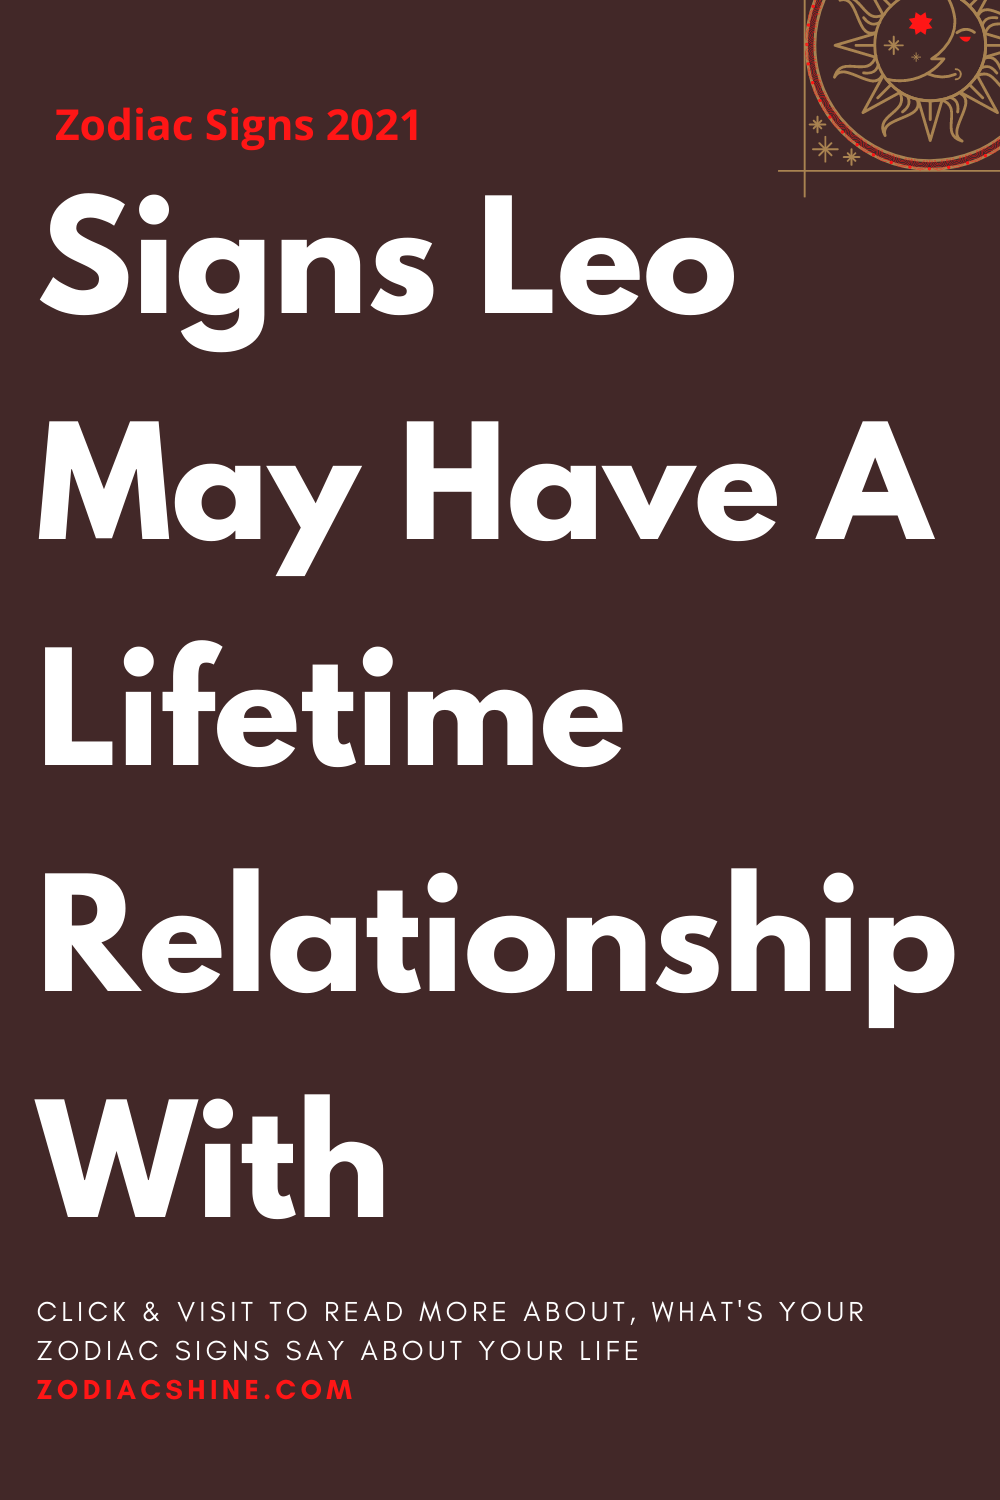 Signs Leo May Have A Lifetime Relationship With